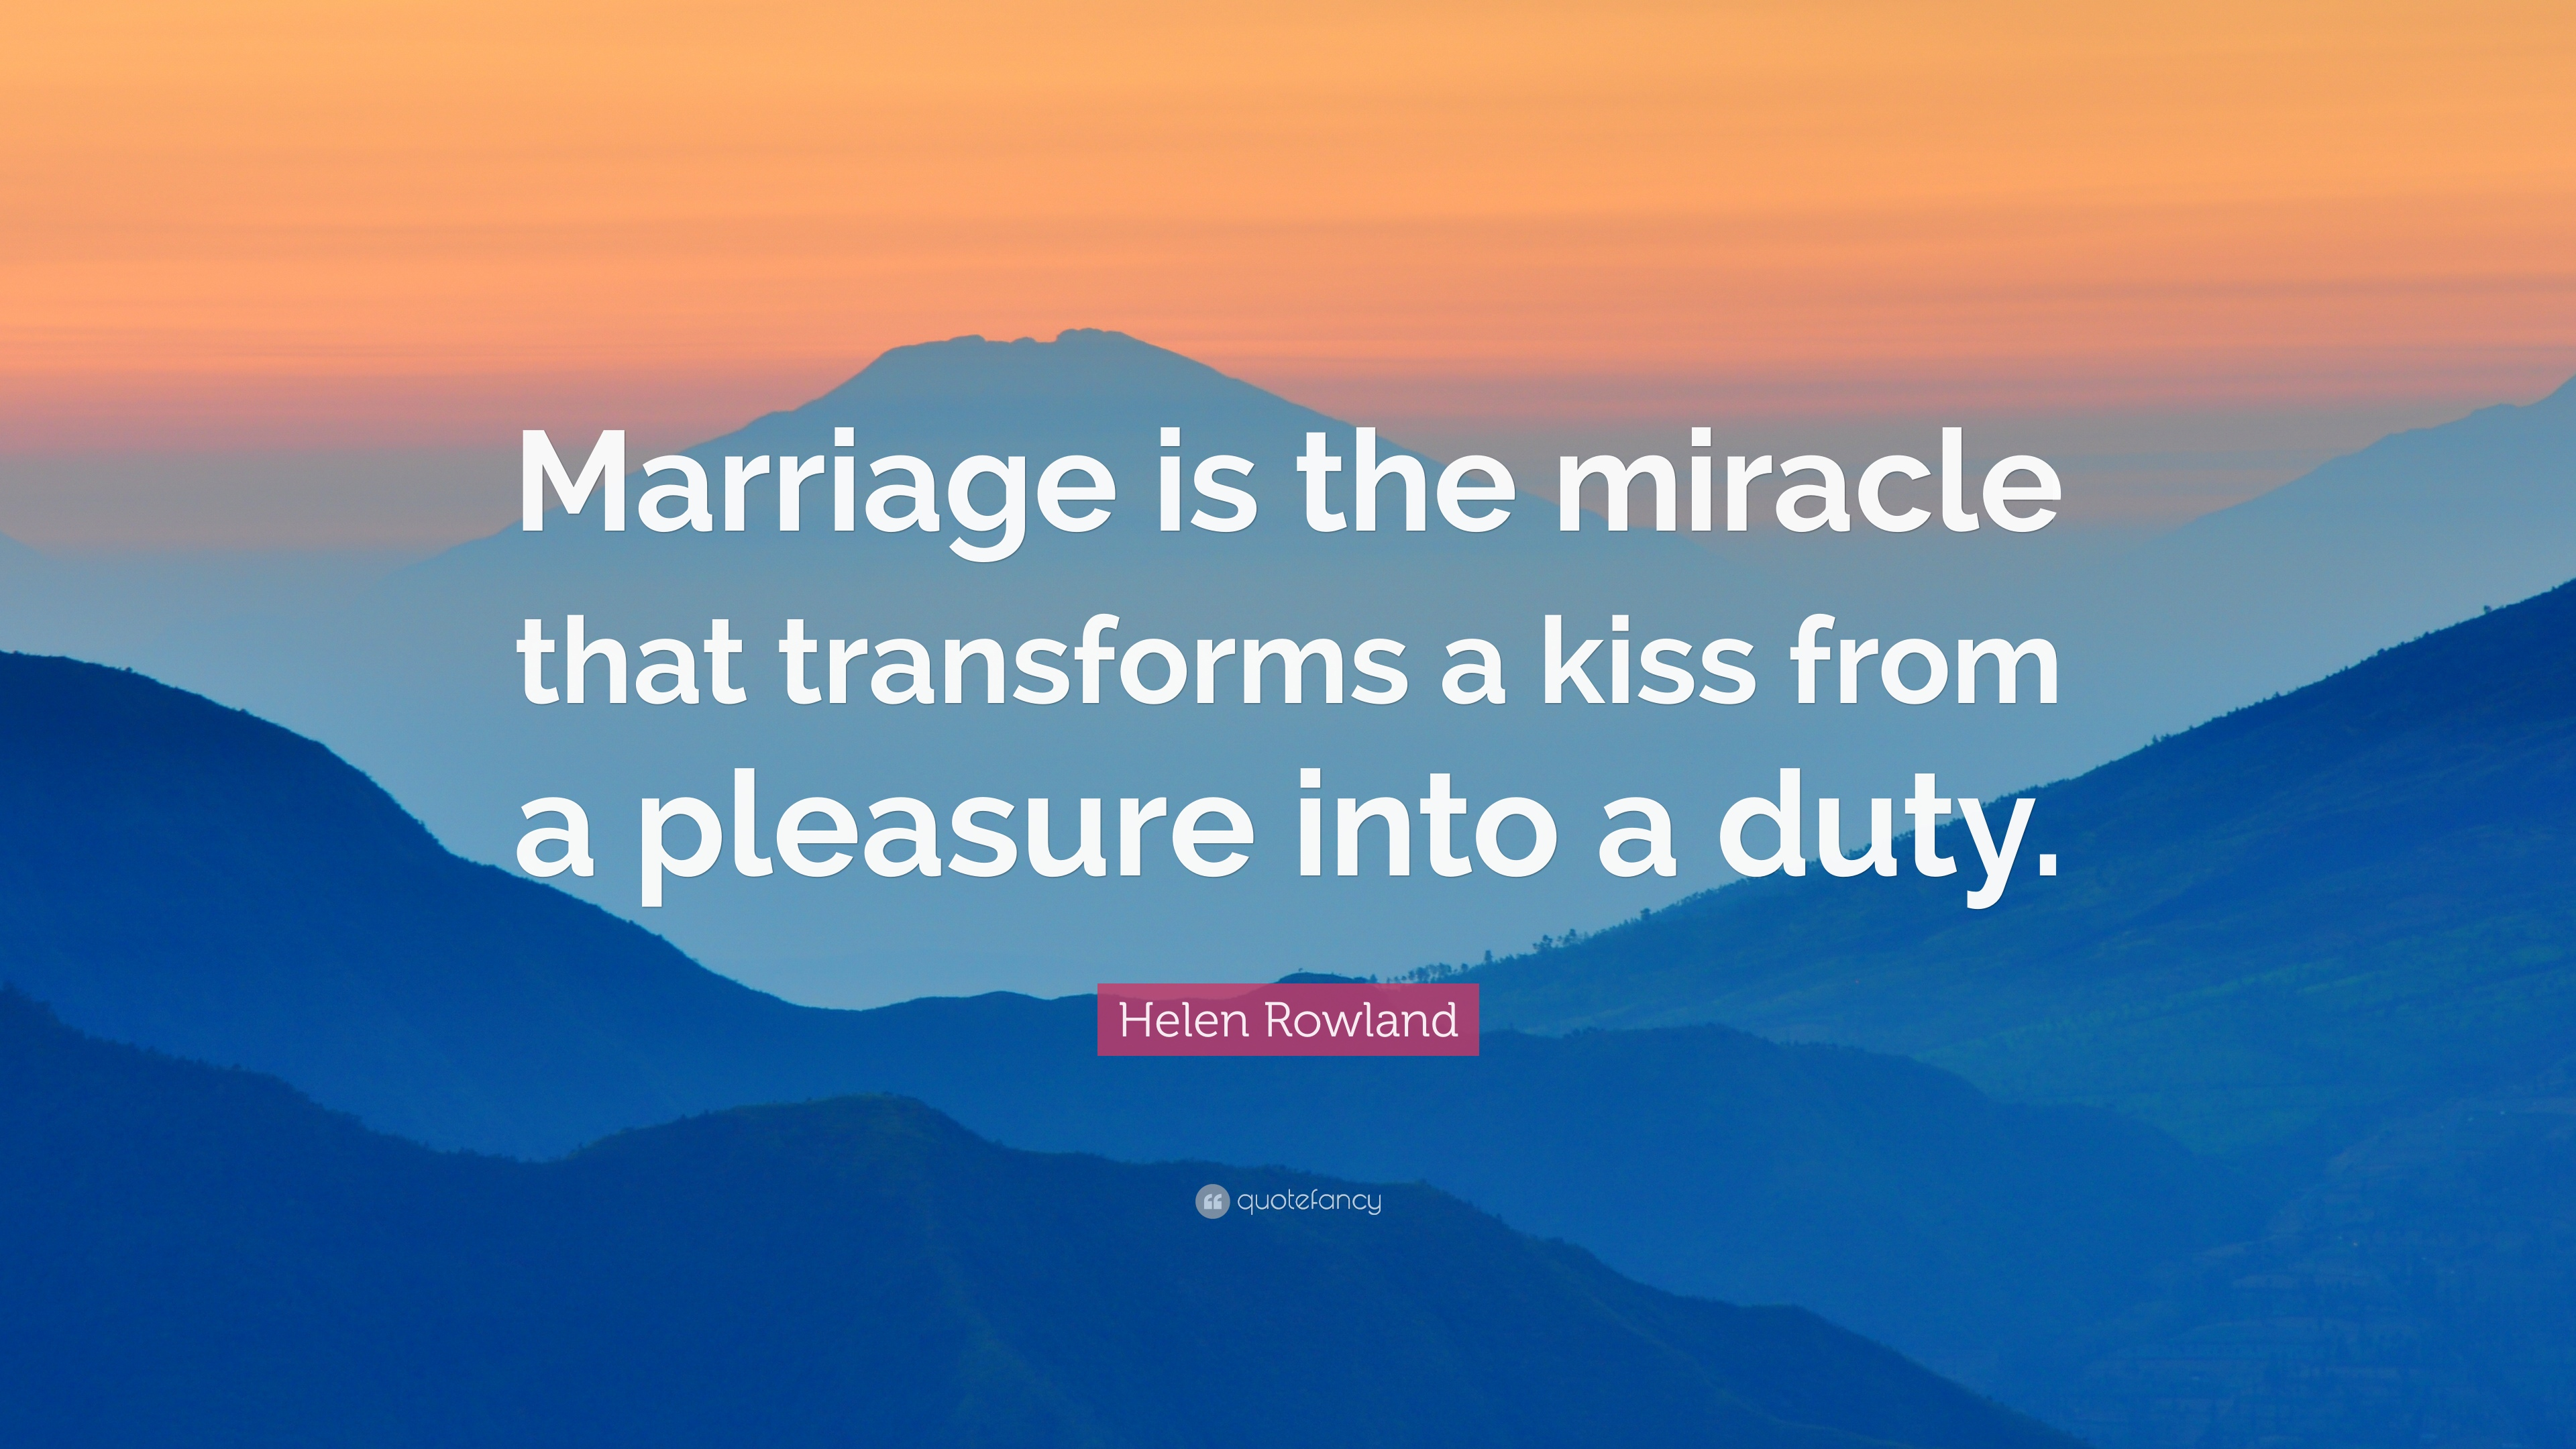 Marriage is a miracle on earth